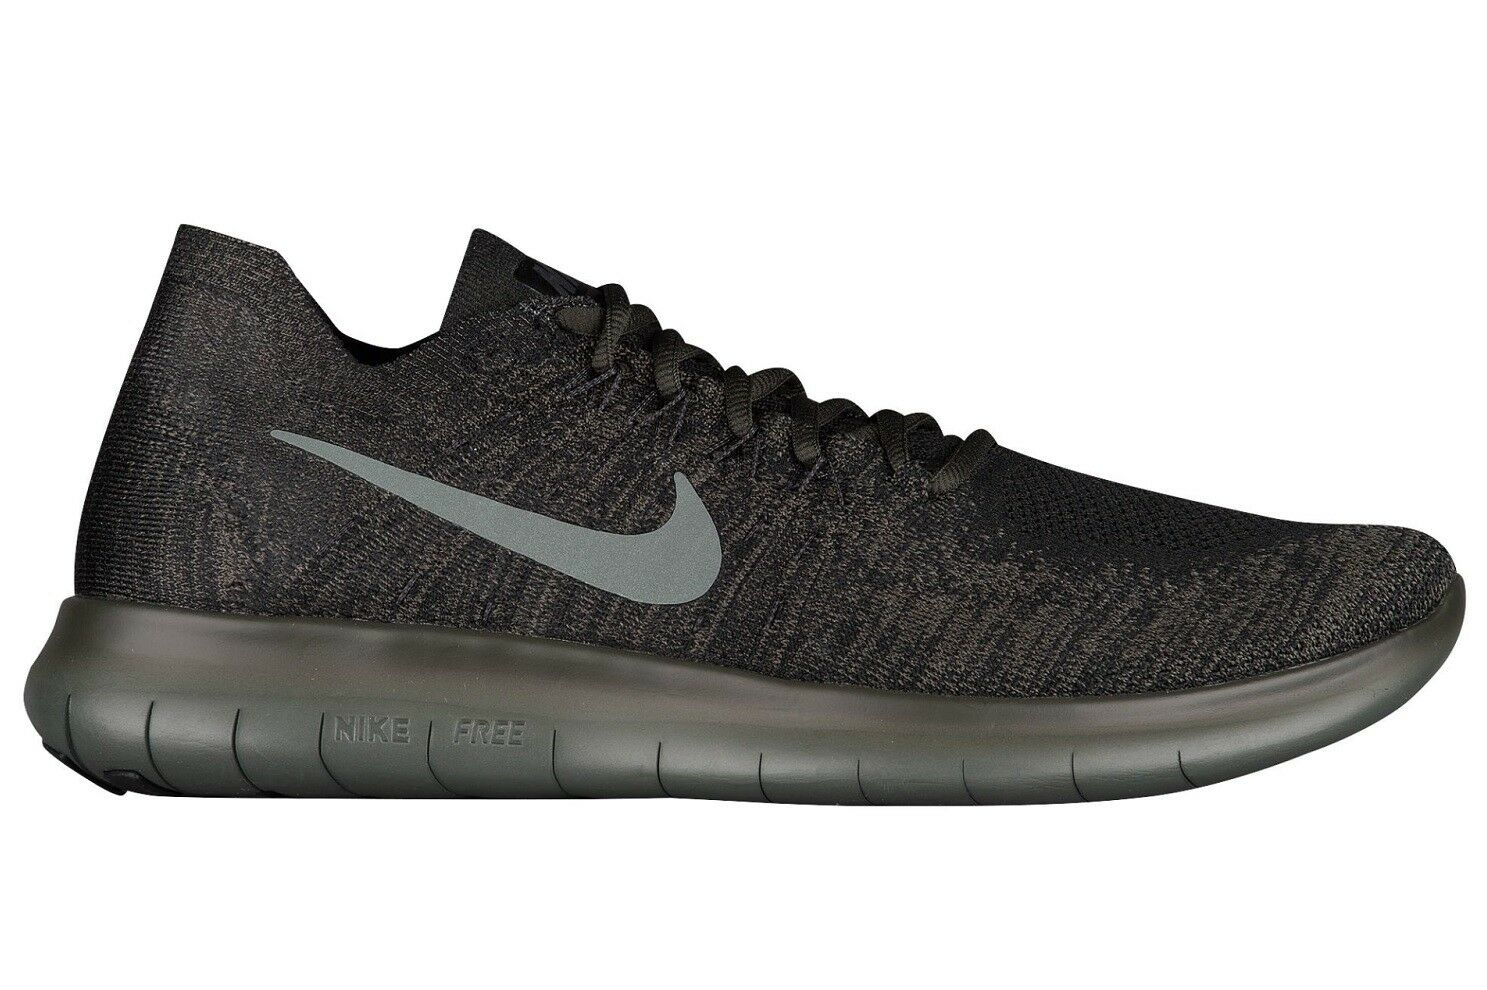 Nike Free RN Flyknit 2018 Mens 880843-012 River Rock Running Shoes Size 10.5